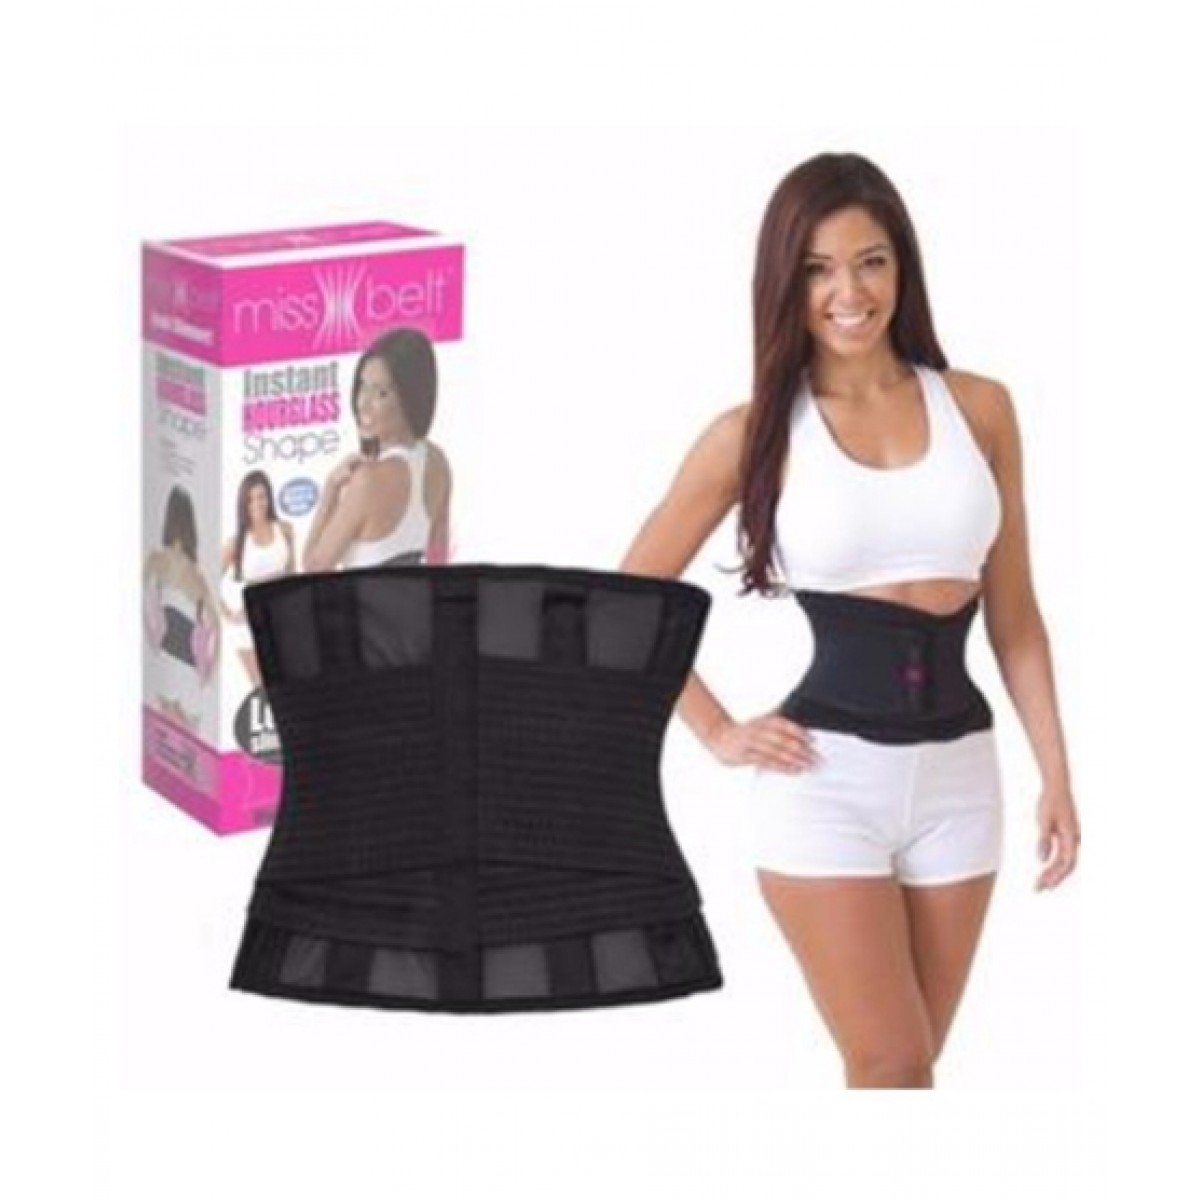 b03b92c4c8 Reviews for Cool Boy Mart Miss Belt Hourglass Shaper Price in ...